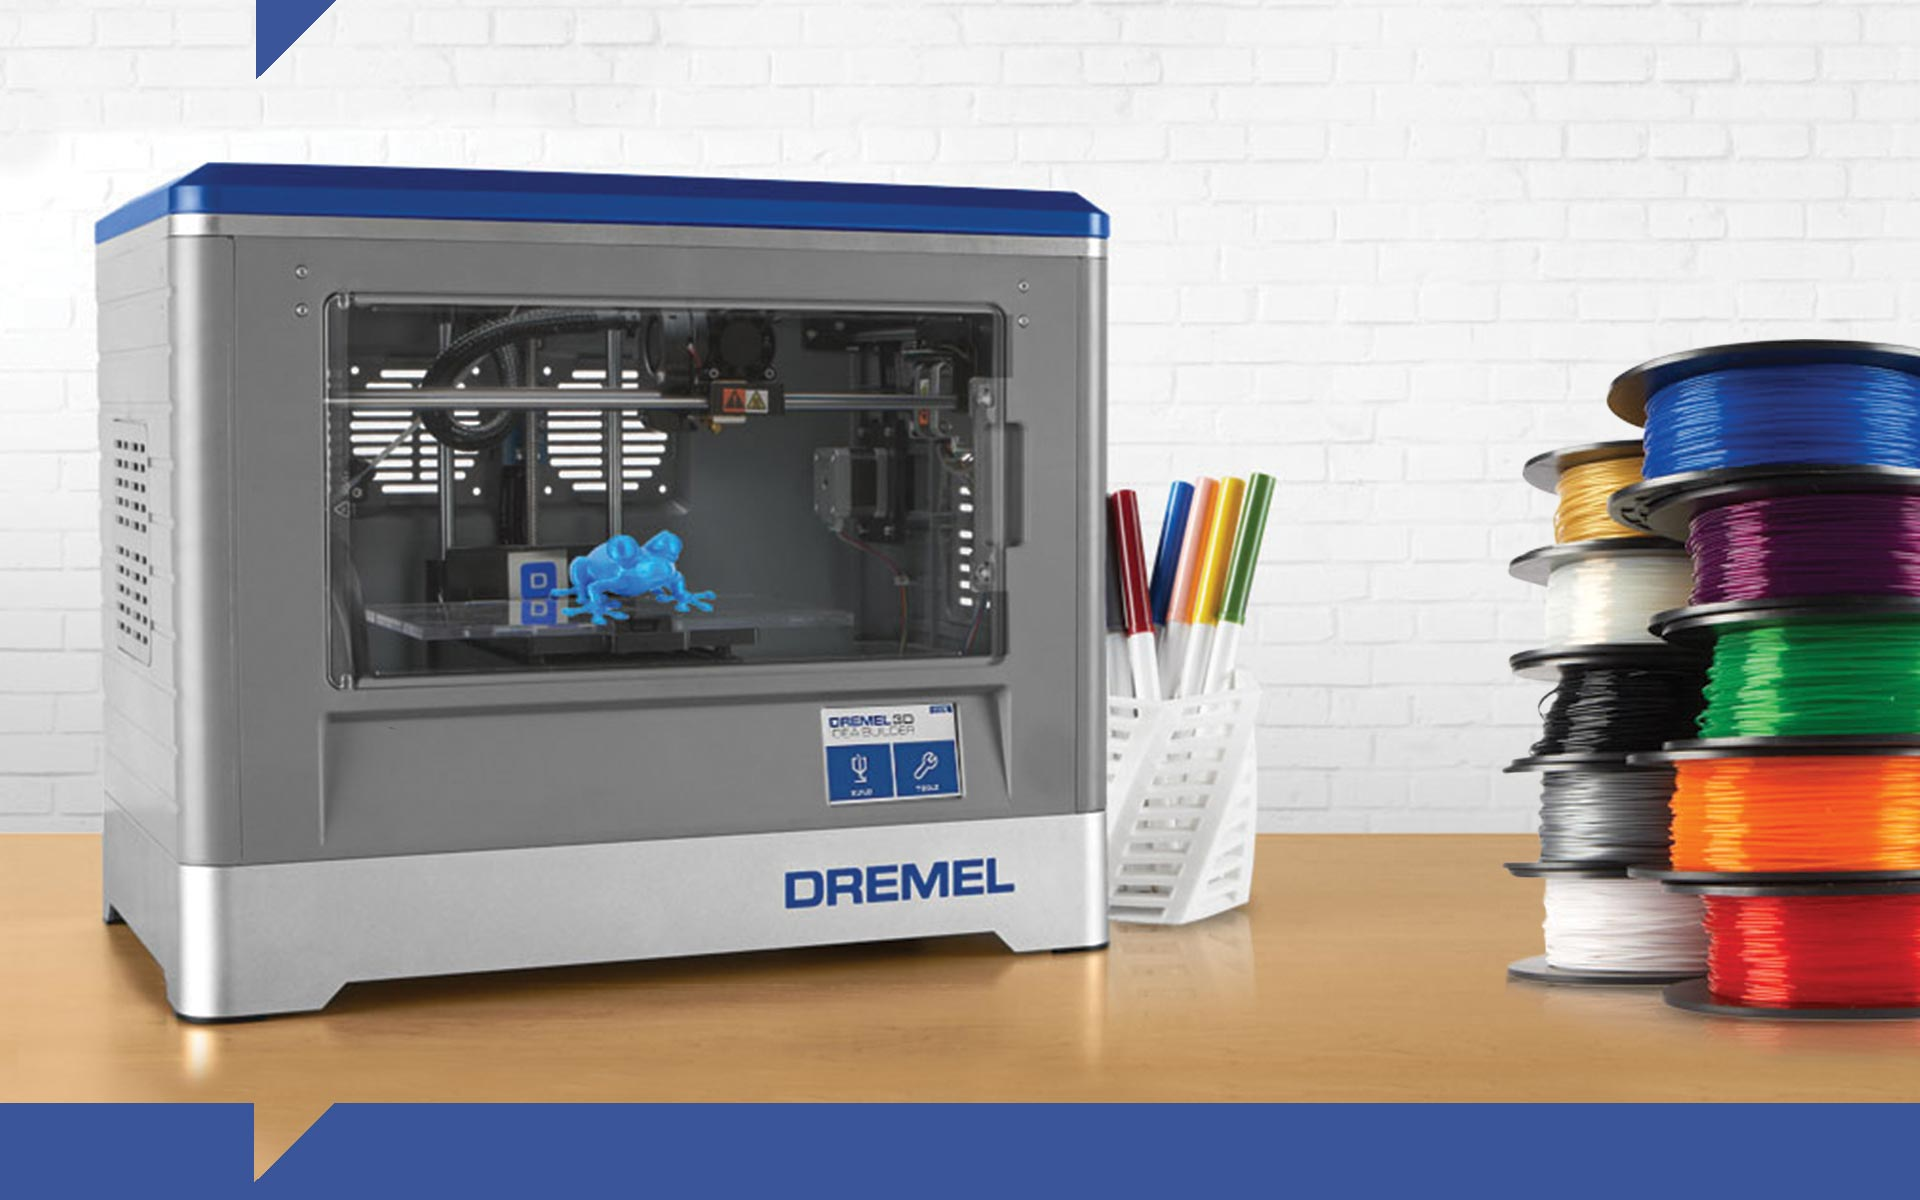 Dremel - Structural package